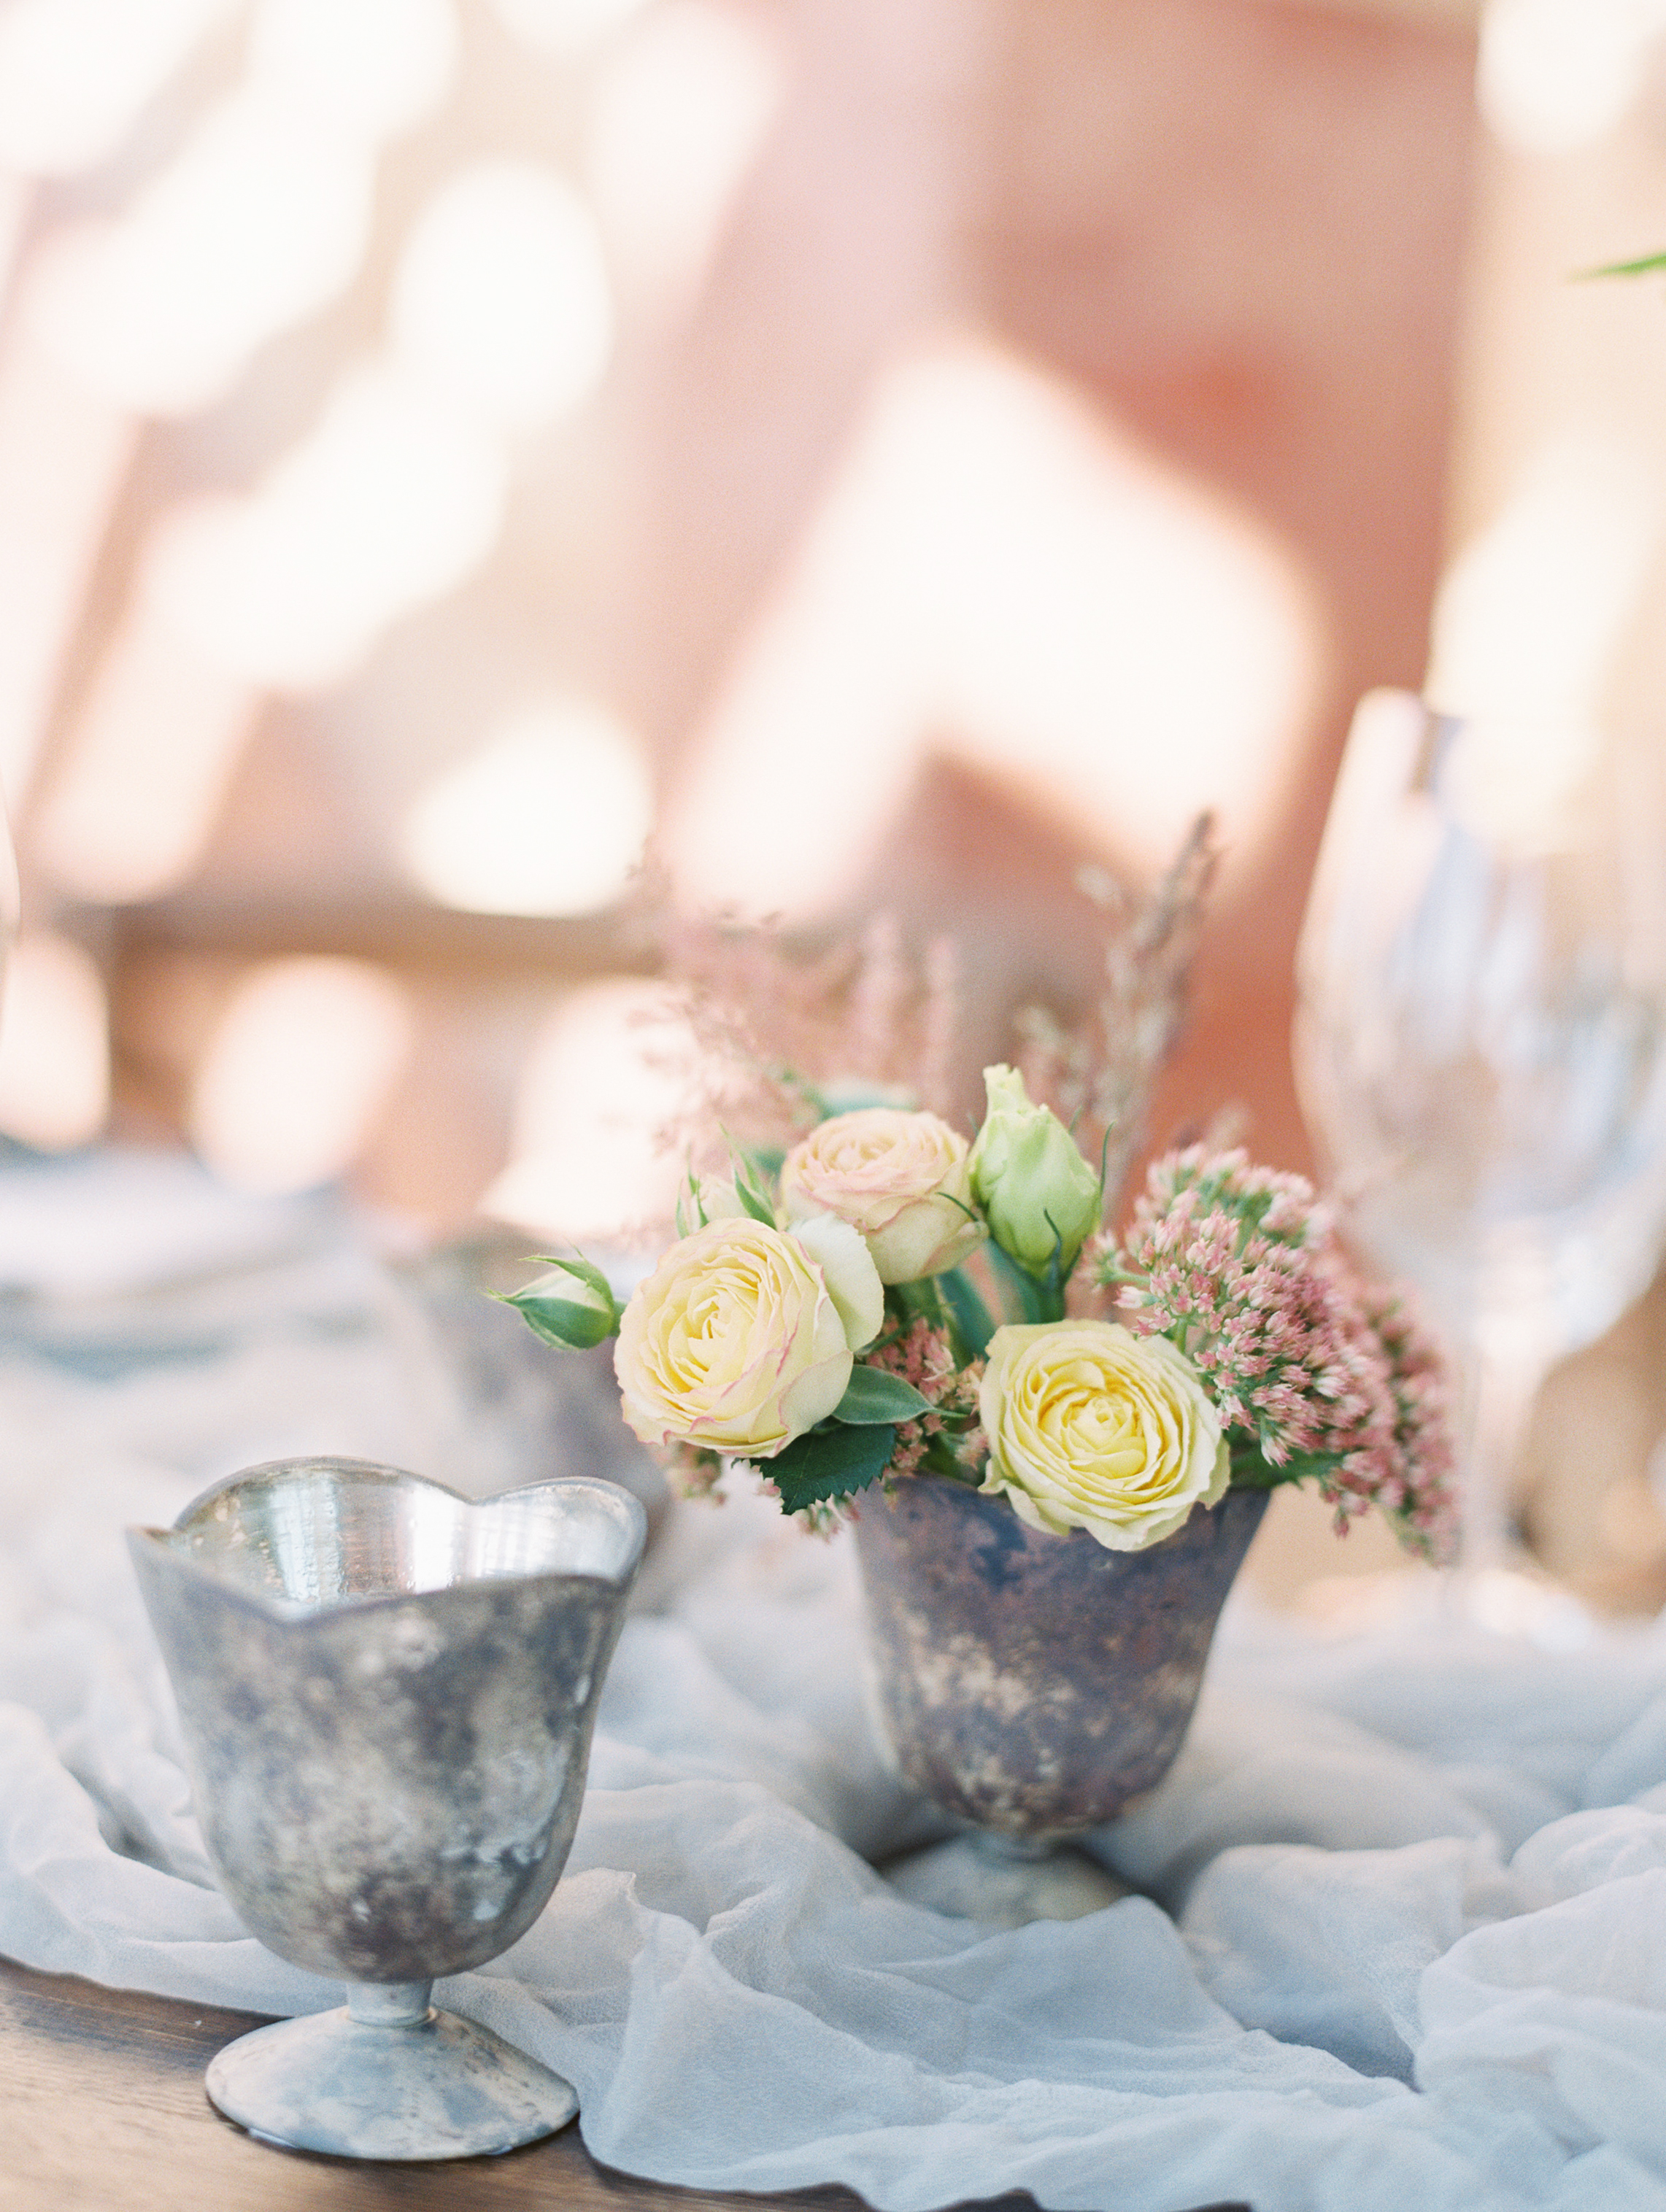 Michelle Leo Events | Utah Wedding and Event Design and Planning